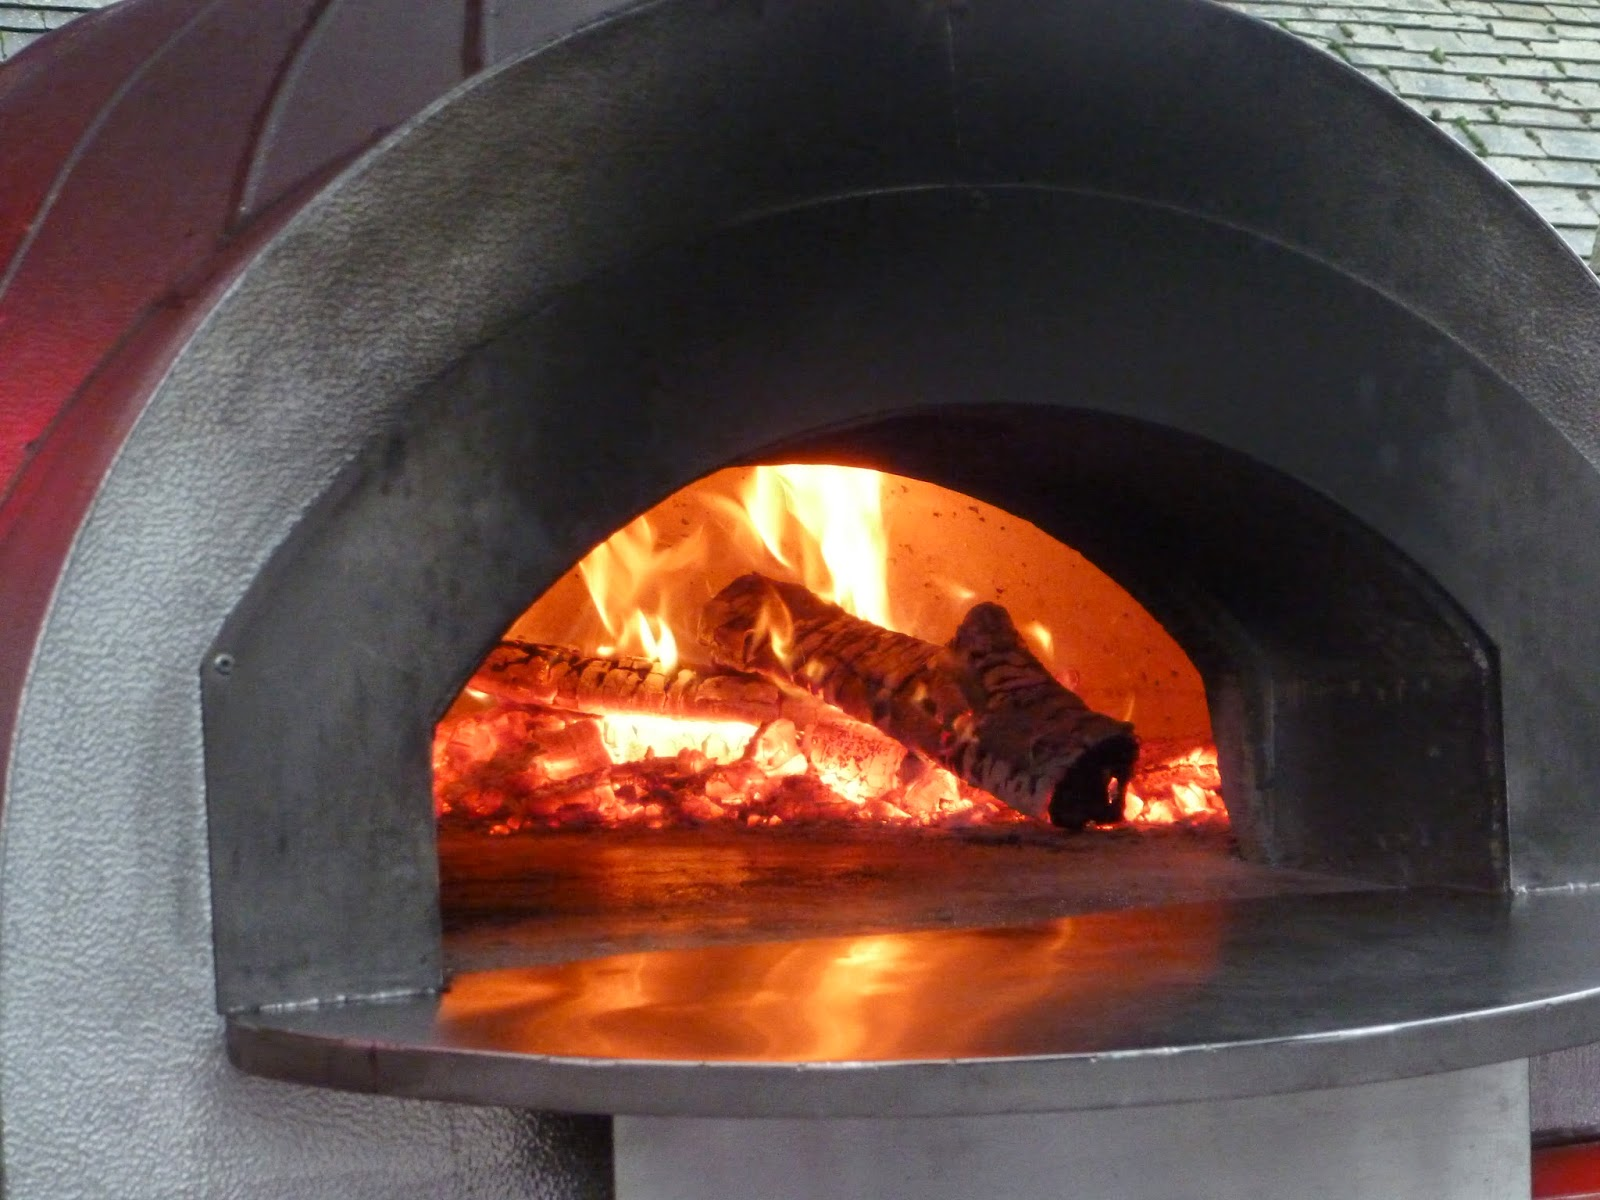 Farmers market stall. Pizza. Woodfired pizza stove oven